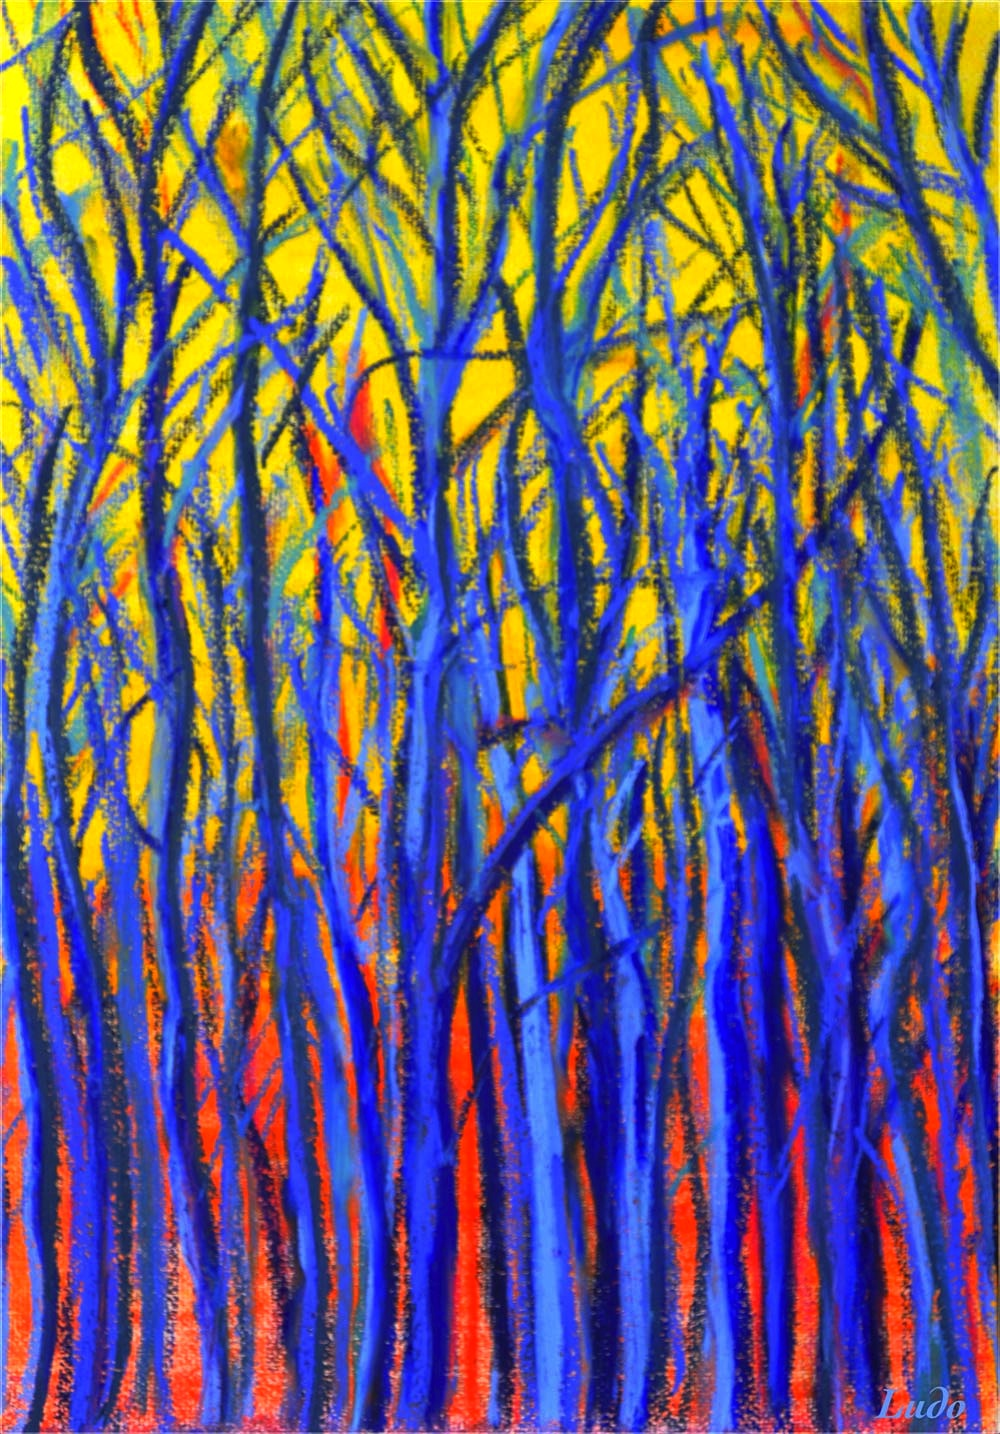 Lahonce forest no. 5. Oil pastel on paper, 42x30, 2015